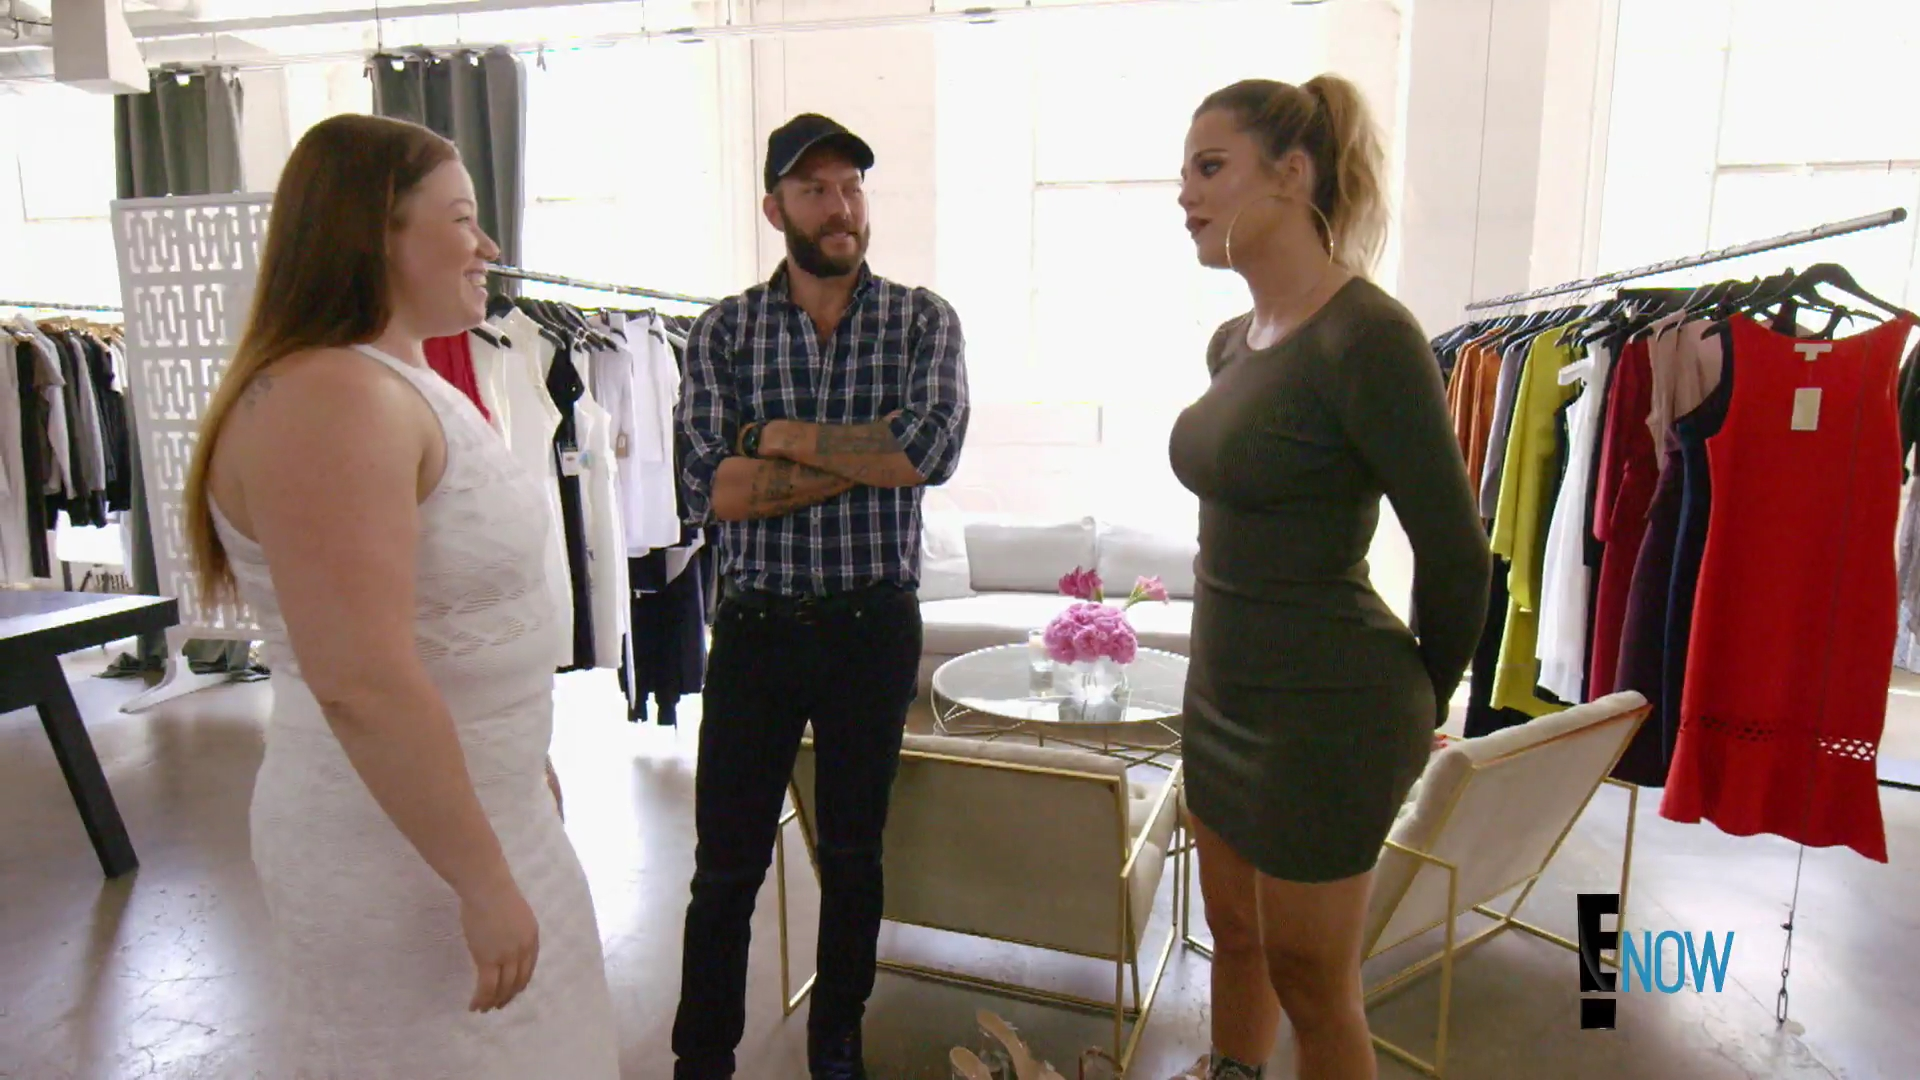 Revenge Body with Khloé Kardashian – Season 2 Episode 06 –  Eye of the Tiger & The Other Woman  – Video streaming, Caps, Episode Still & Ratings